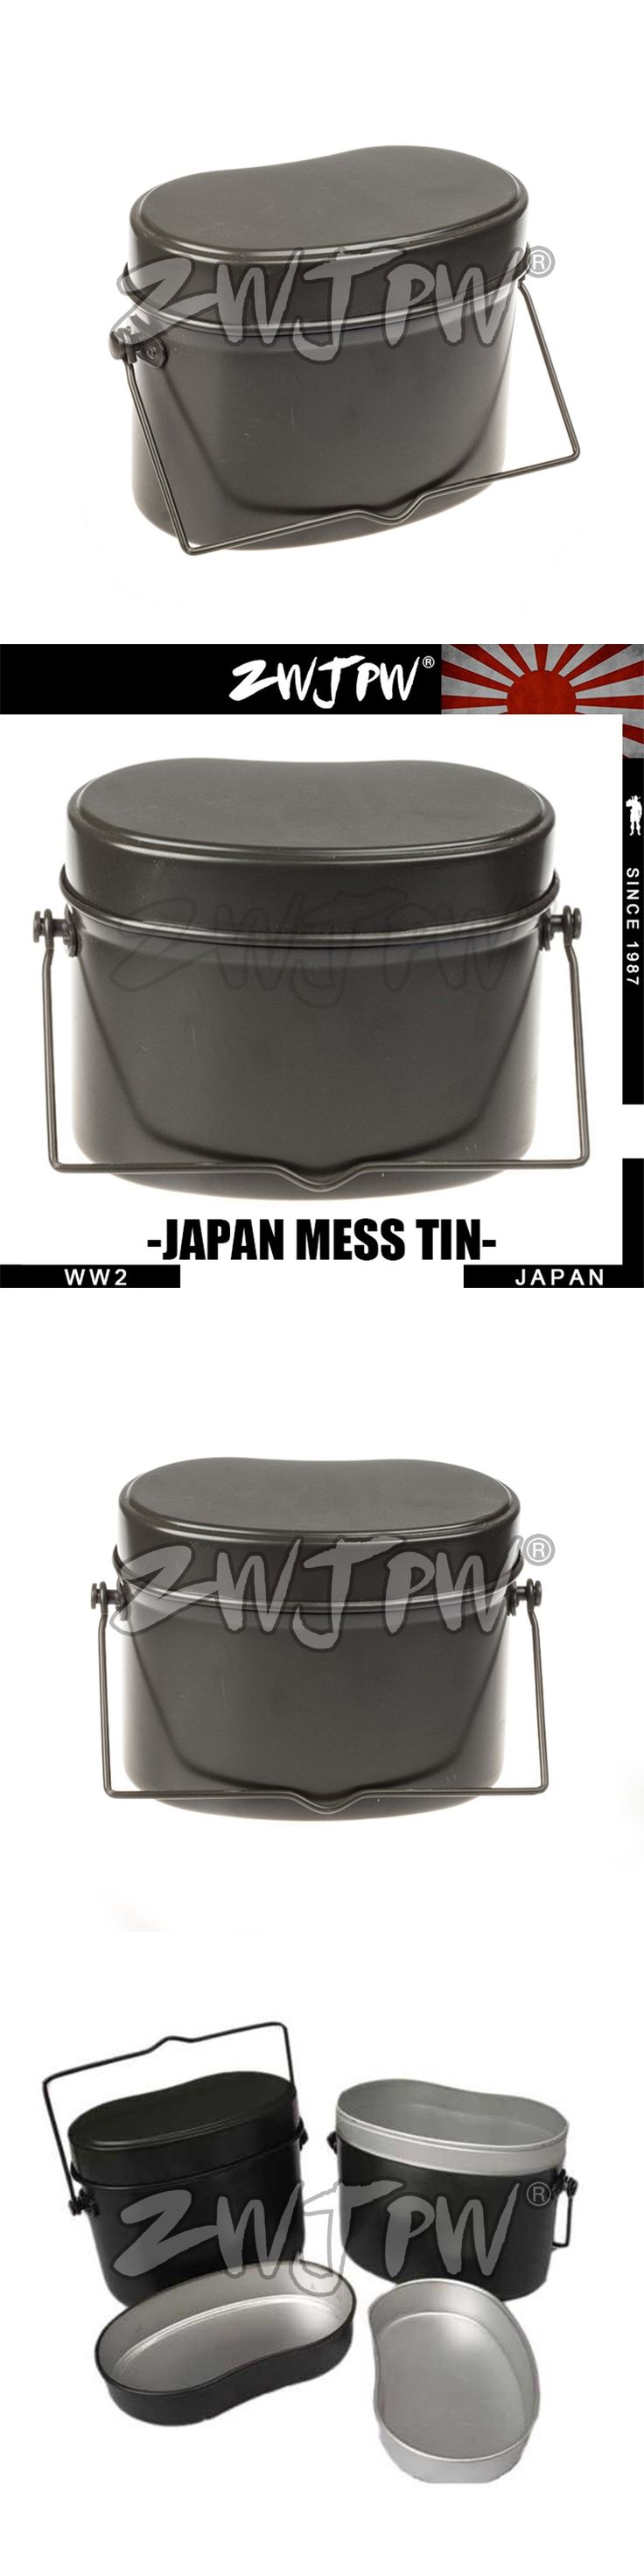 WWII WW2 JAPAN ARMY ALUMINIUM LUNCH BOX CAMPING HIKING MESS TIN LUNCH BOX JP/102101